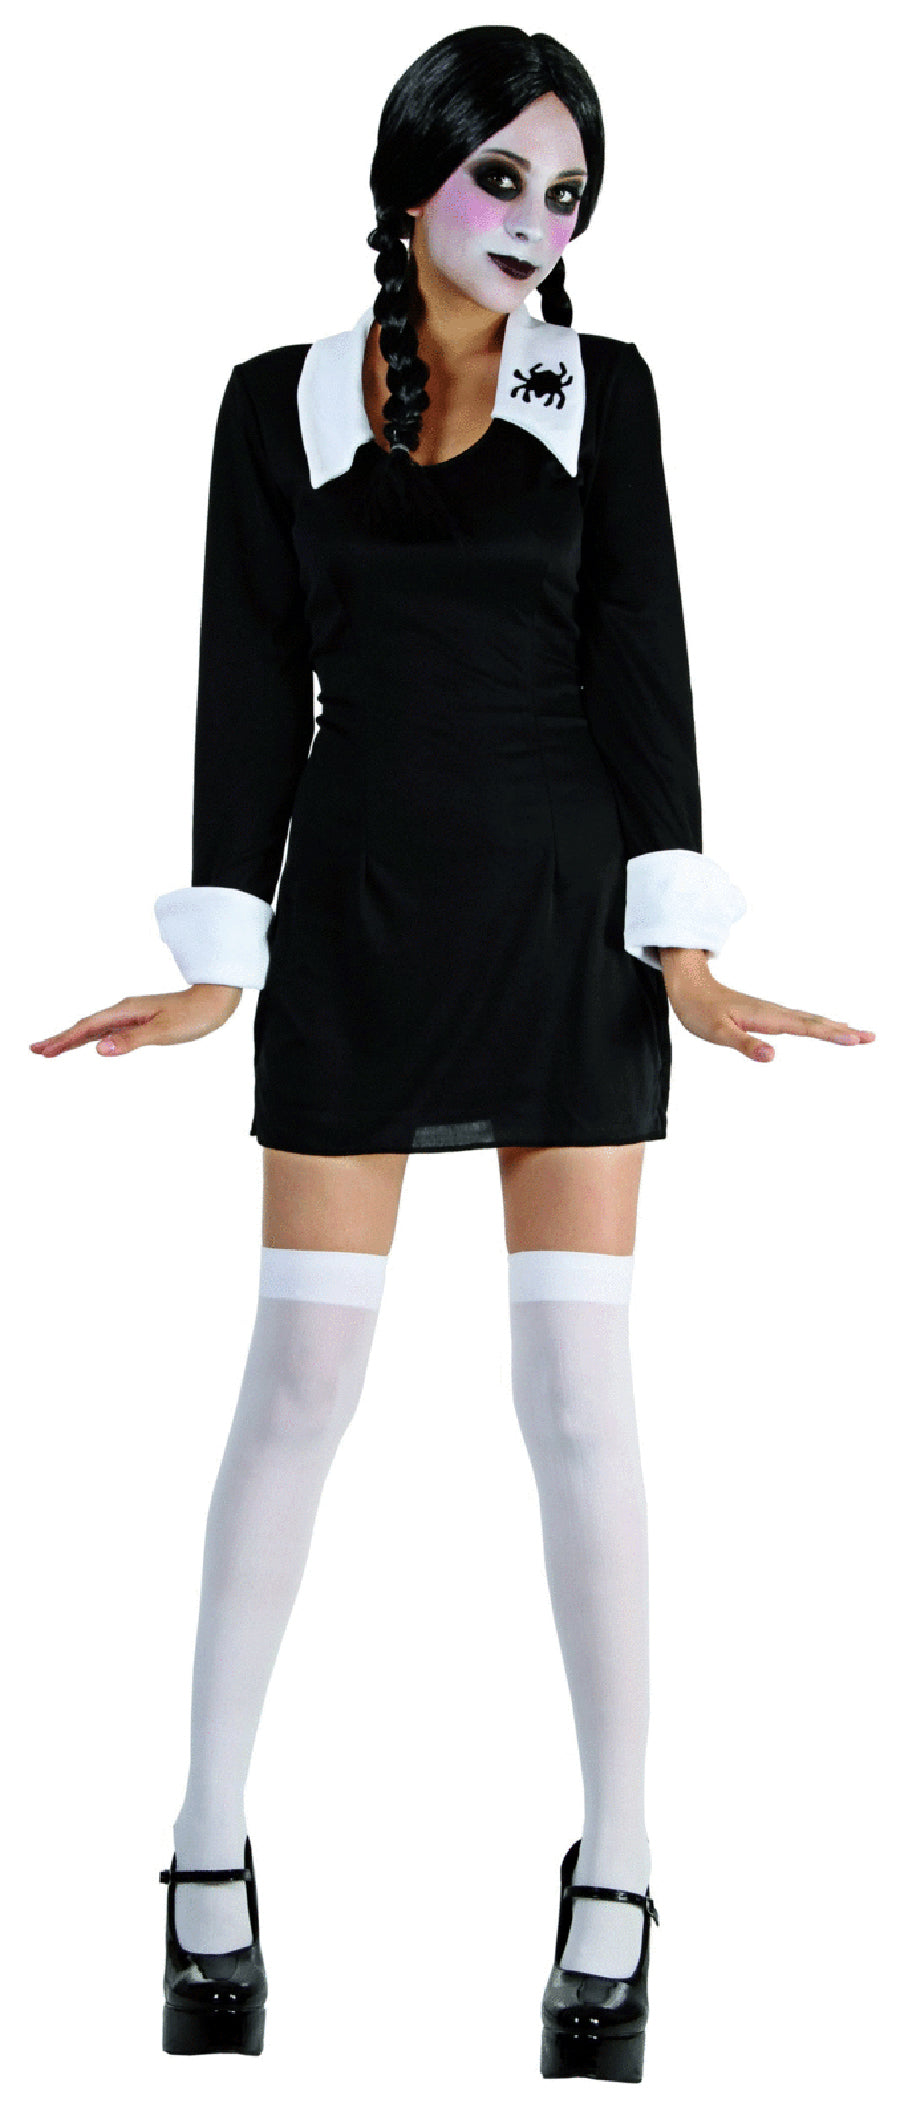 Creepy School Girl Costume - Buy Online Only